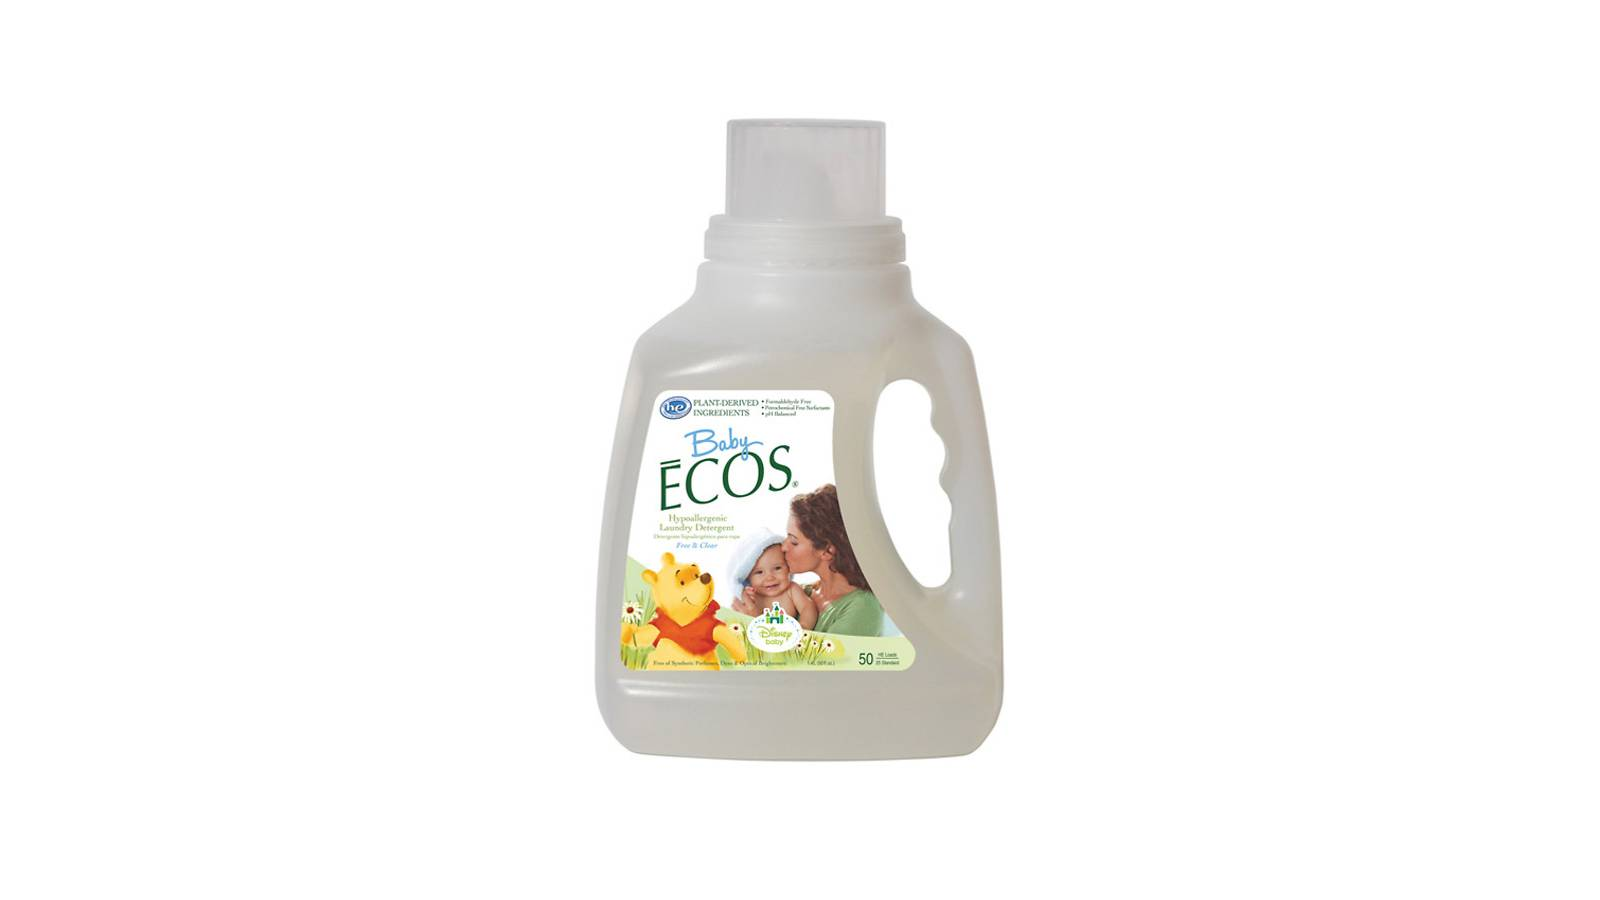 Babies-BUYER'S-GUIDE-7-best-laundry-detergents-for-baby-BABYECOS